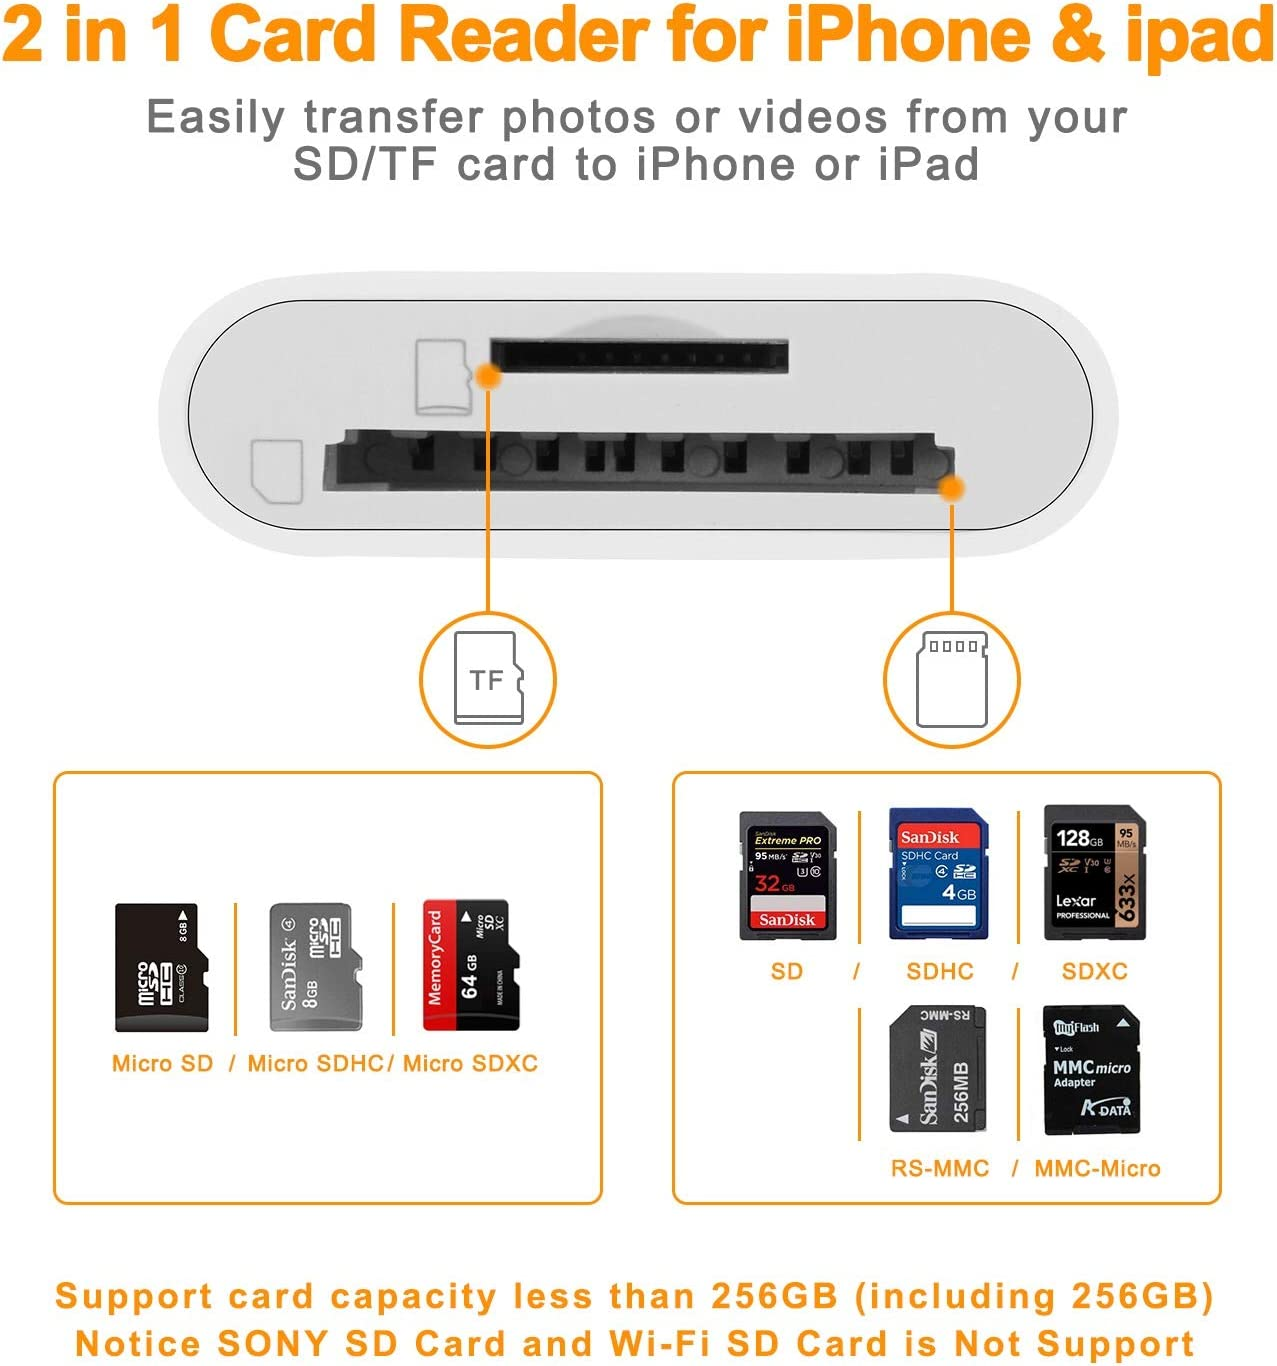 VELLEE SD Card Reader Compatible with iPhone/iPad, TF & SD Memory Card Reader Adapter, 2 in 1 Dual Slot Card Reader, Trail Game Camera Viewer (Support ...